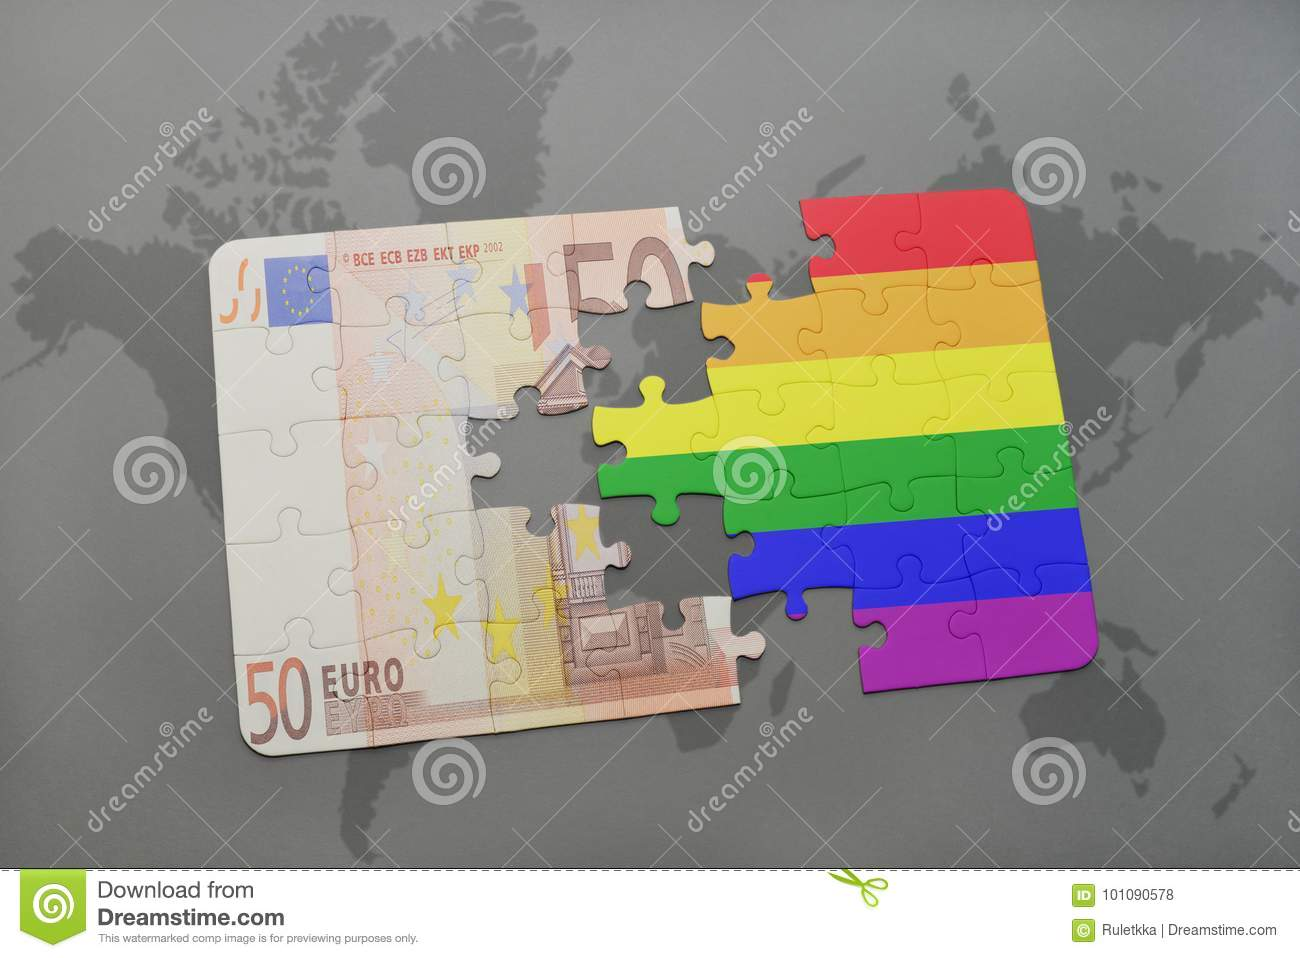 puzzle with the gay rainbow flag and euro banknote on a world map